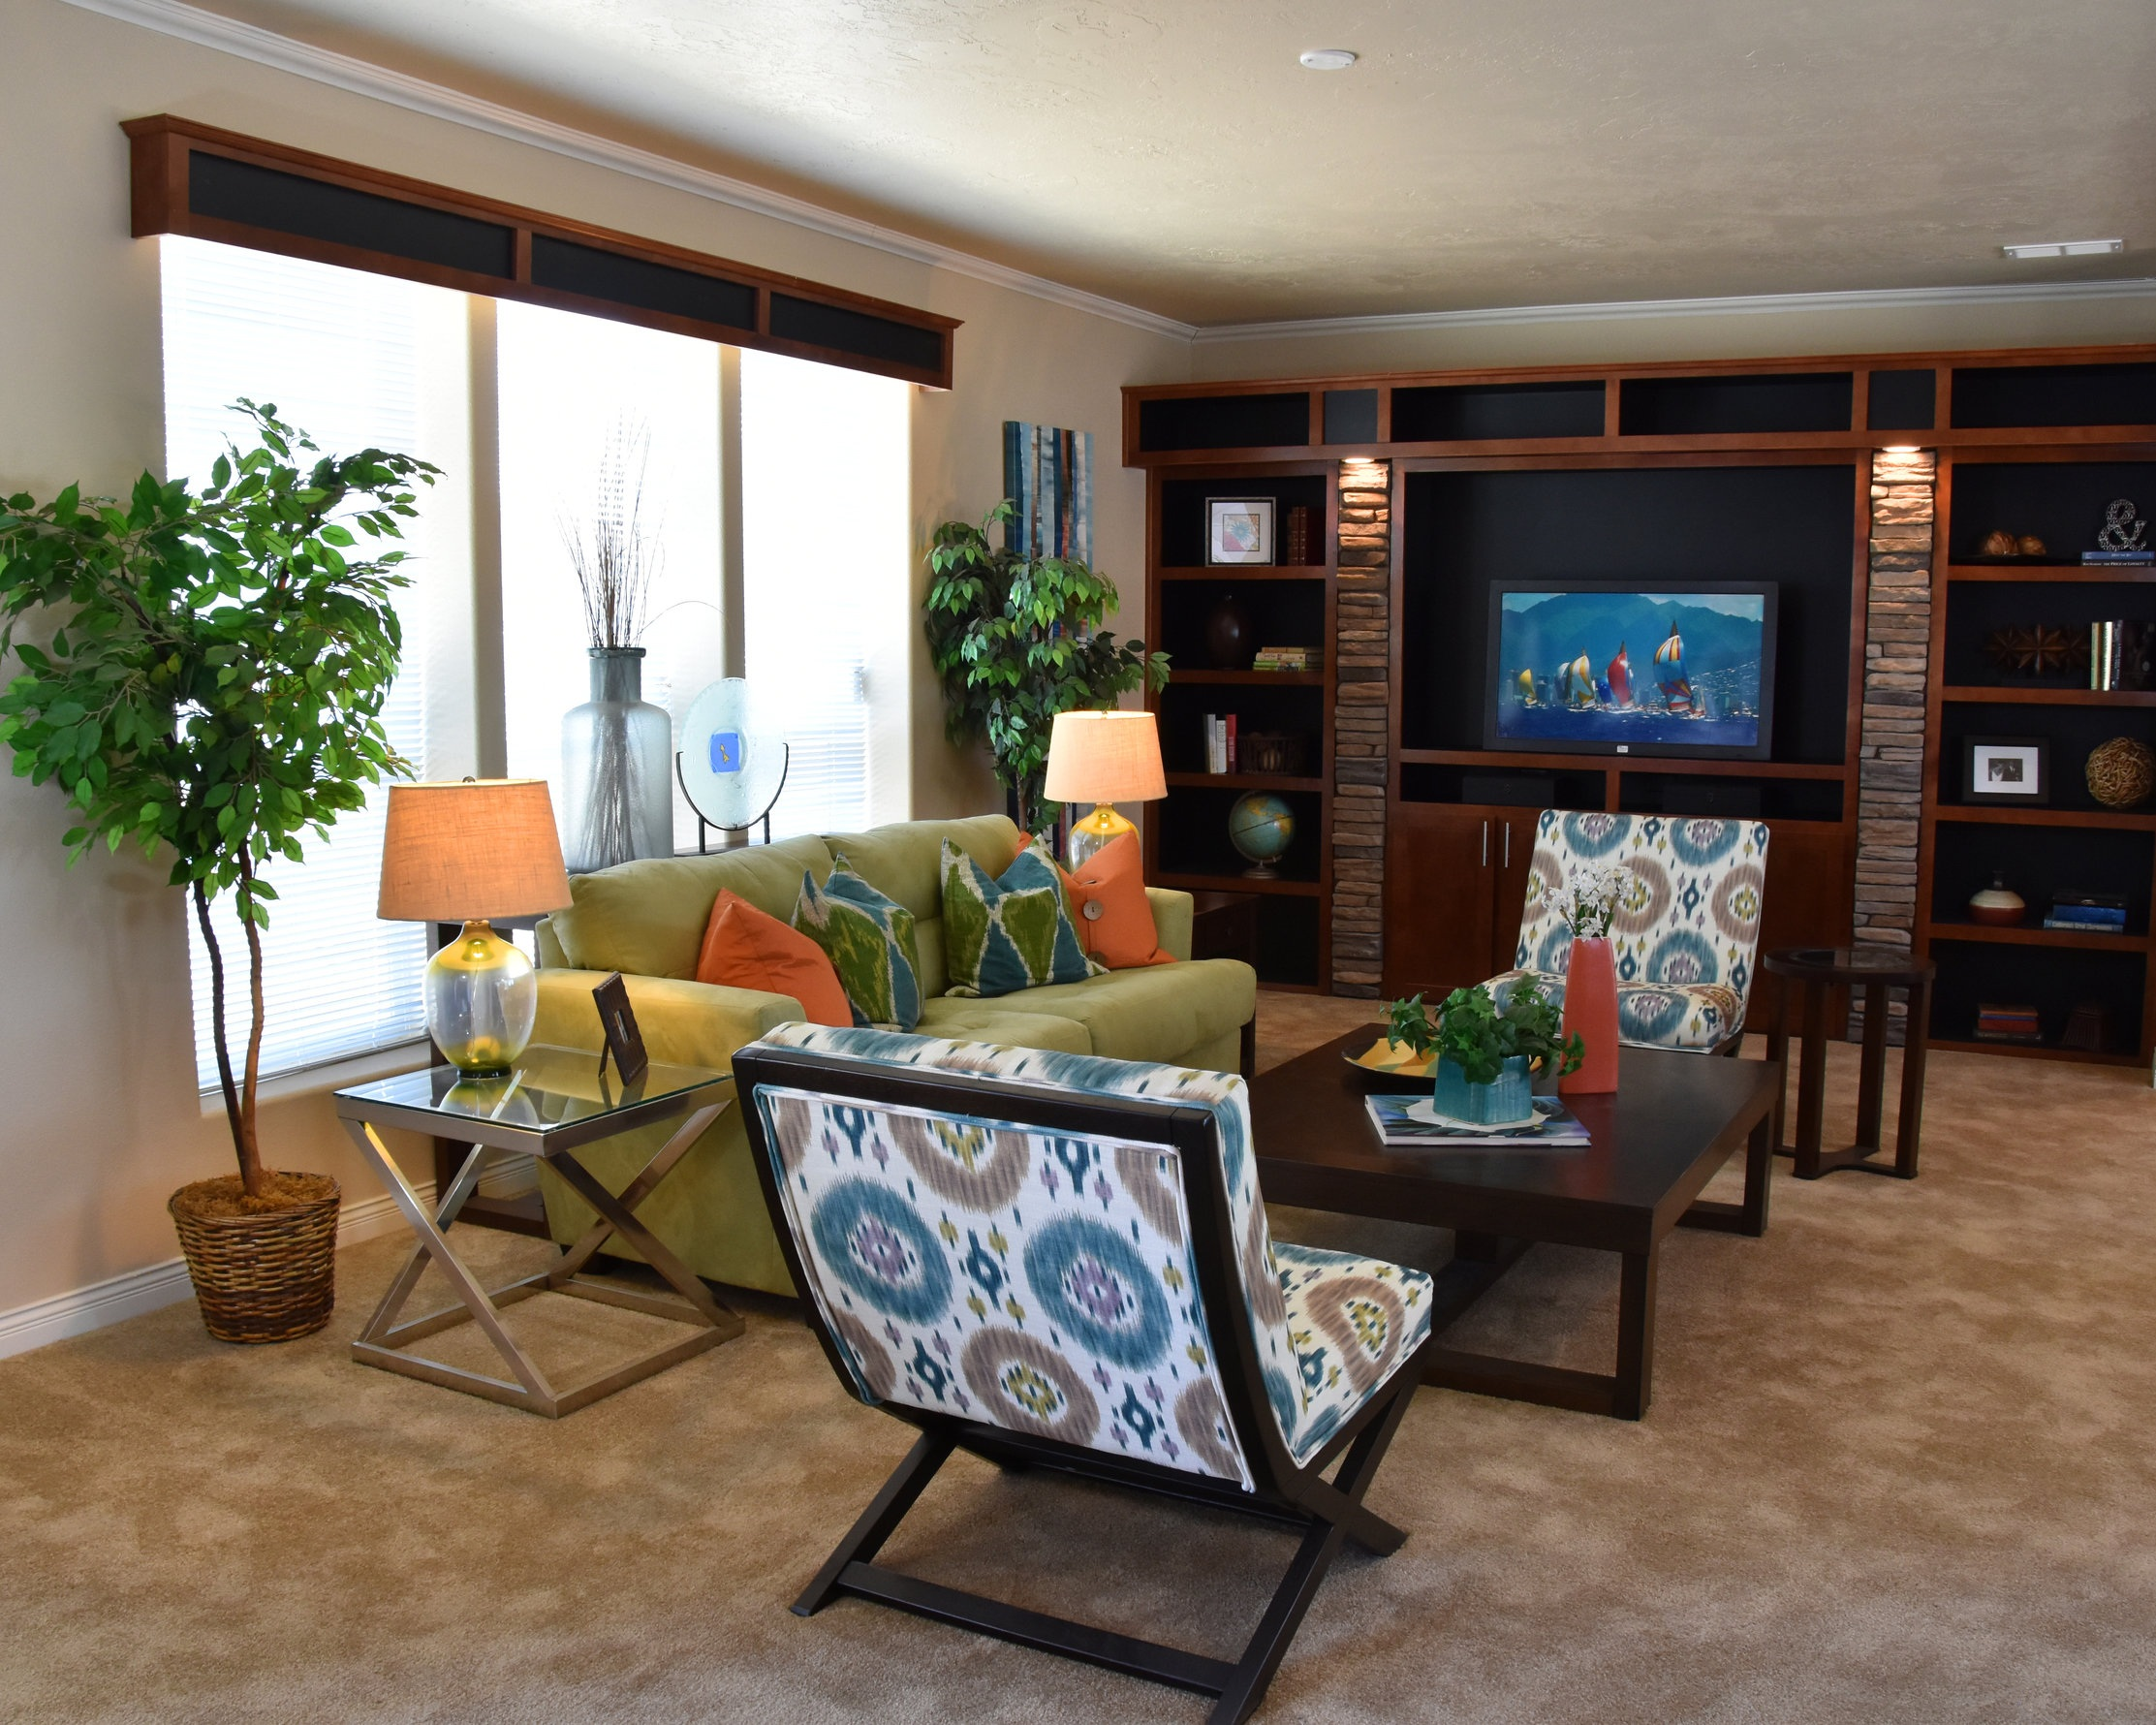 Model Home Design - Model Home Merchandising and Home Staging   Pacific Northwest